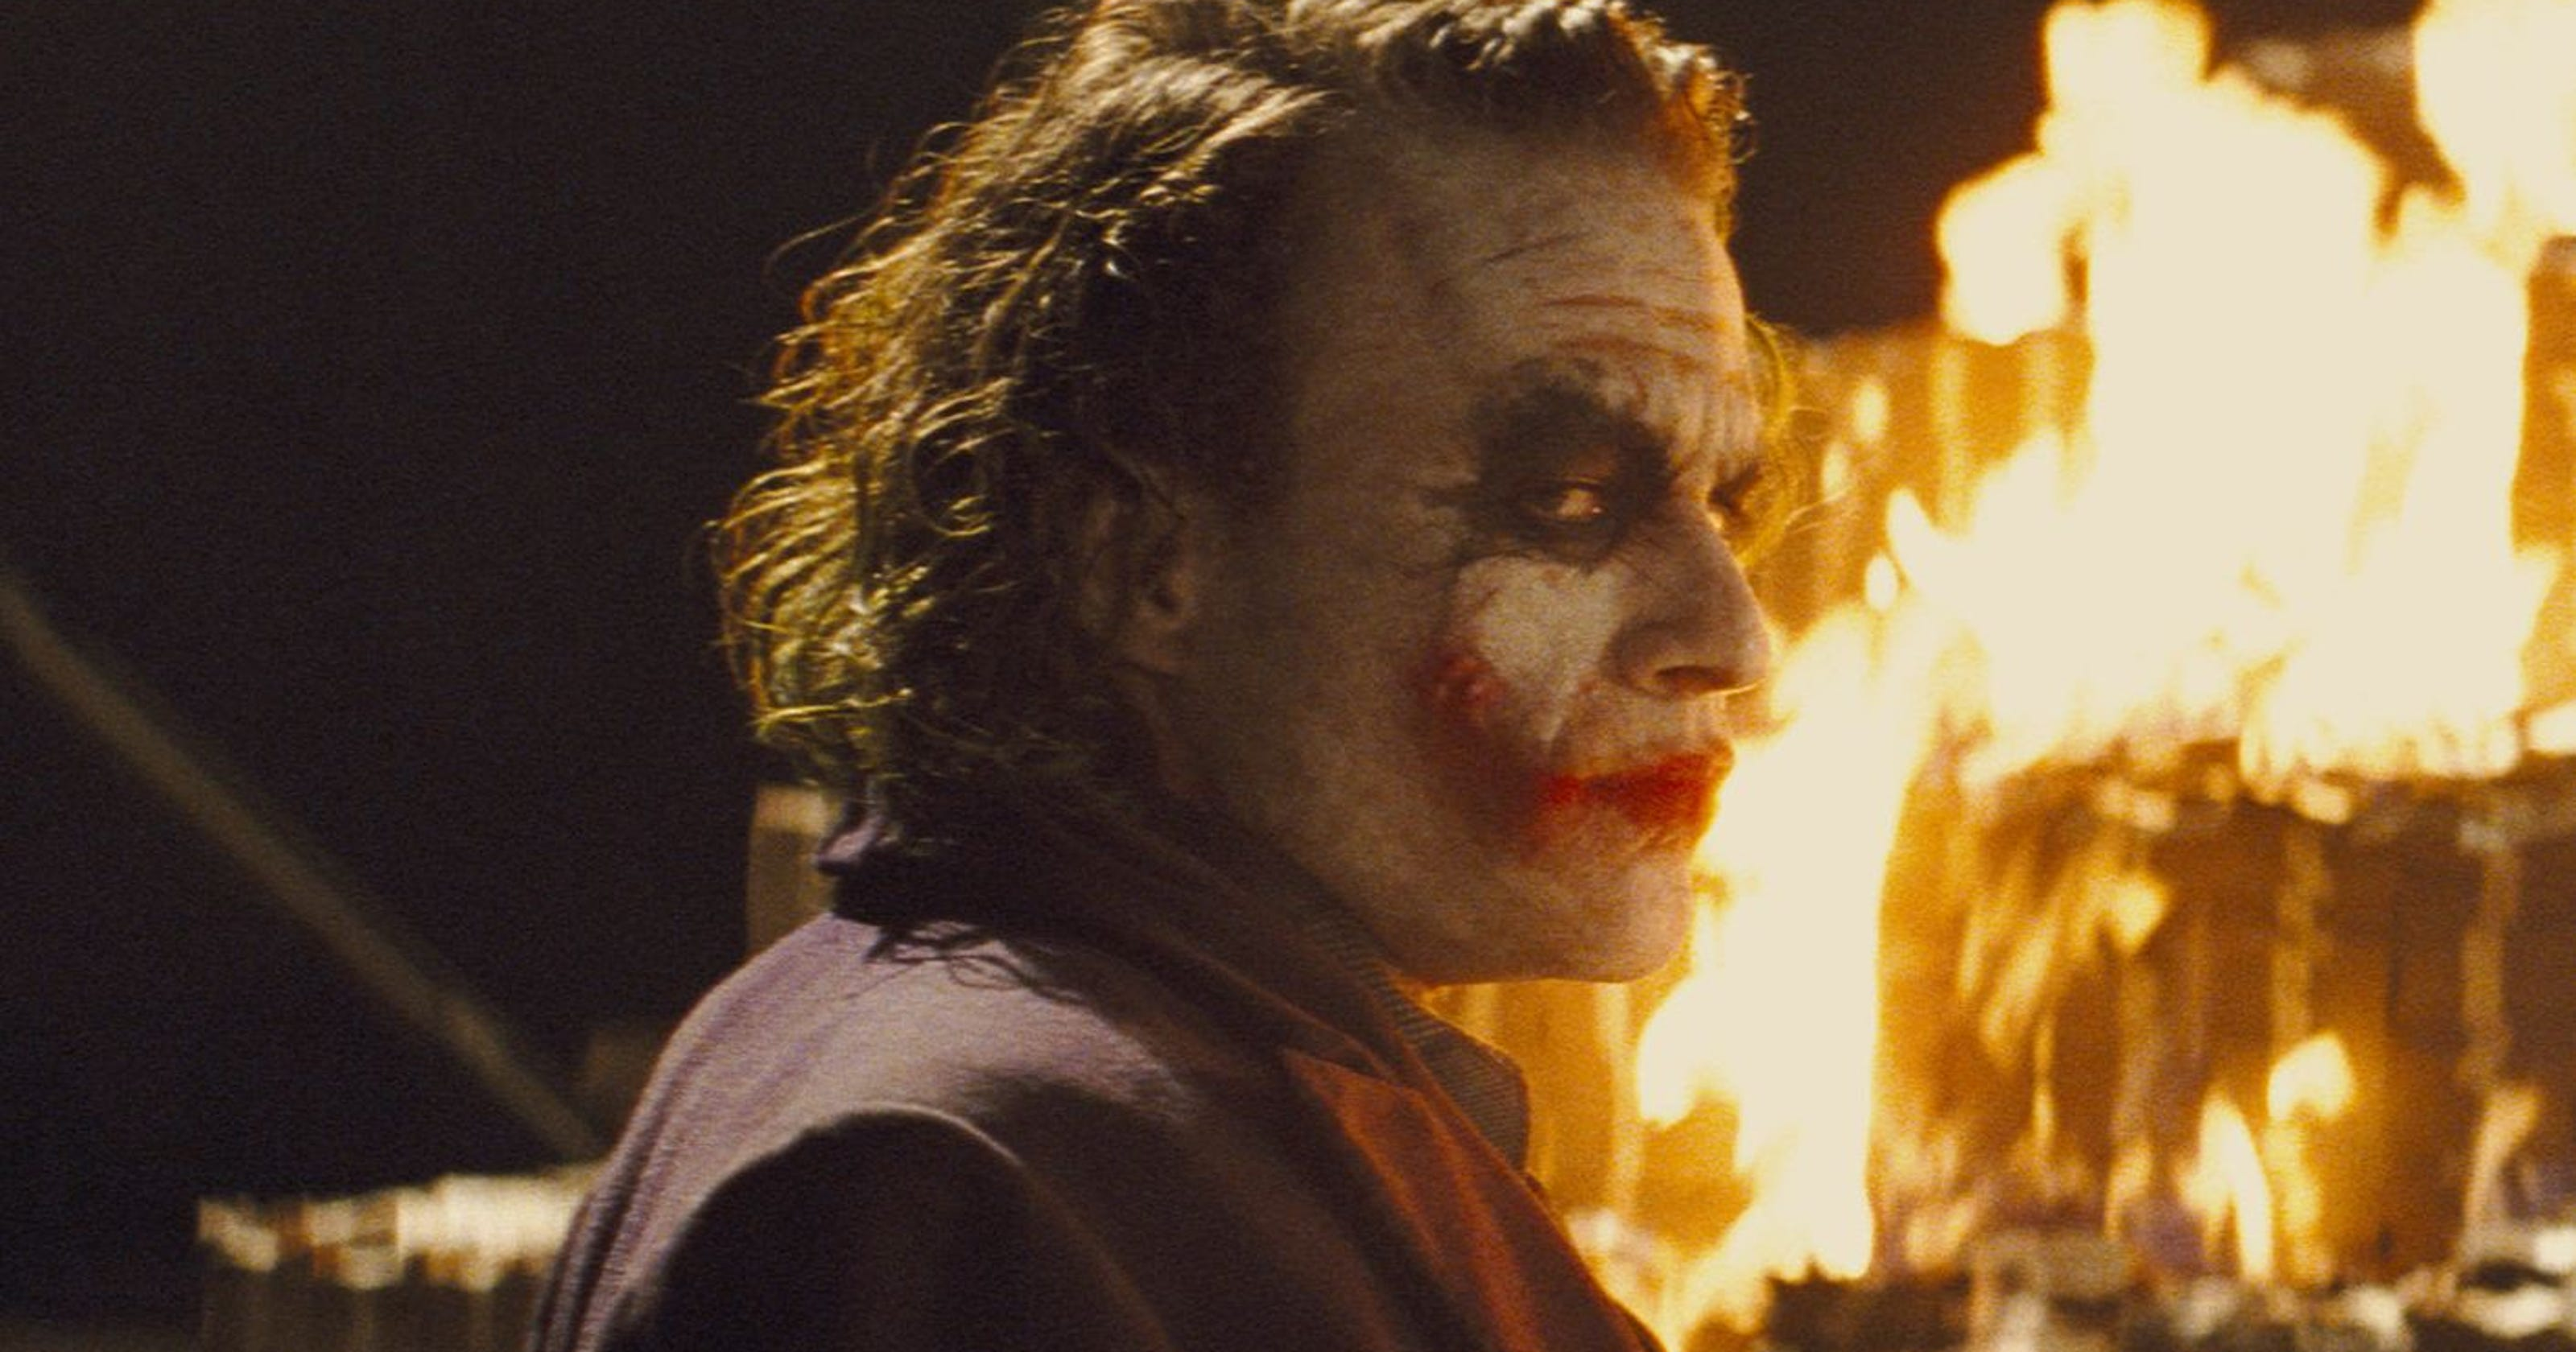 The Joker, The Dark Knight (2008)